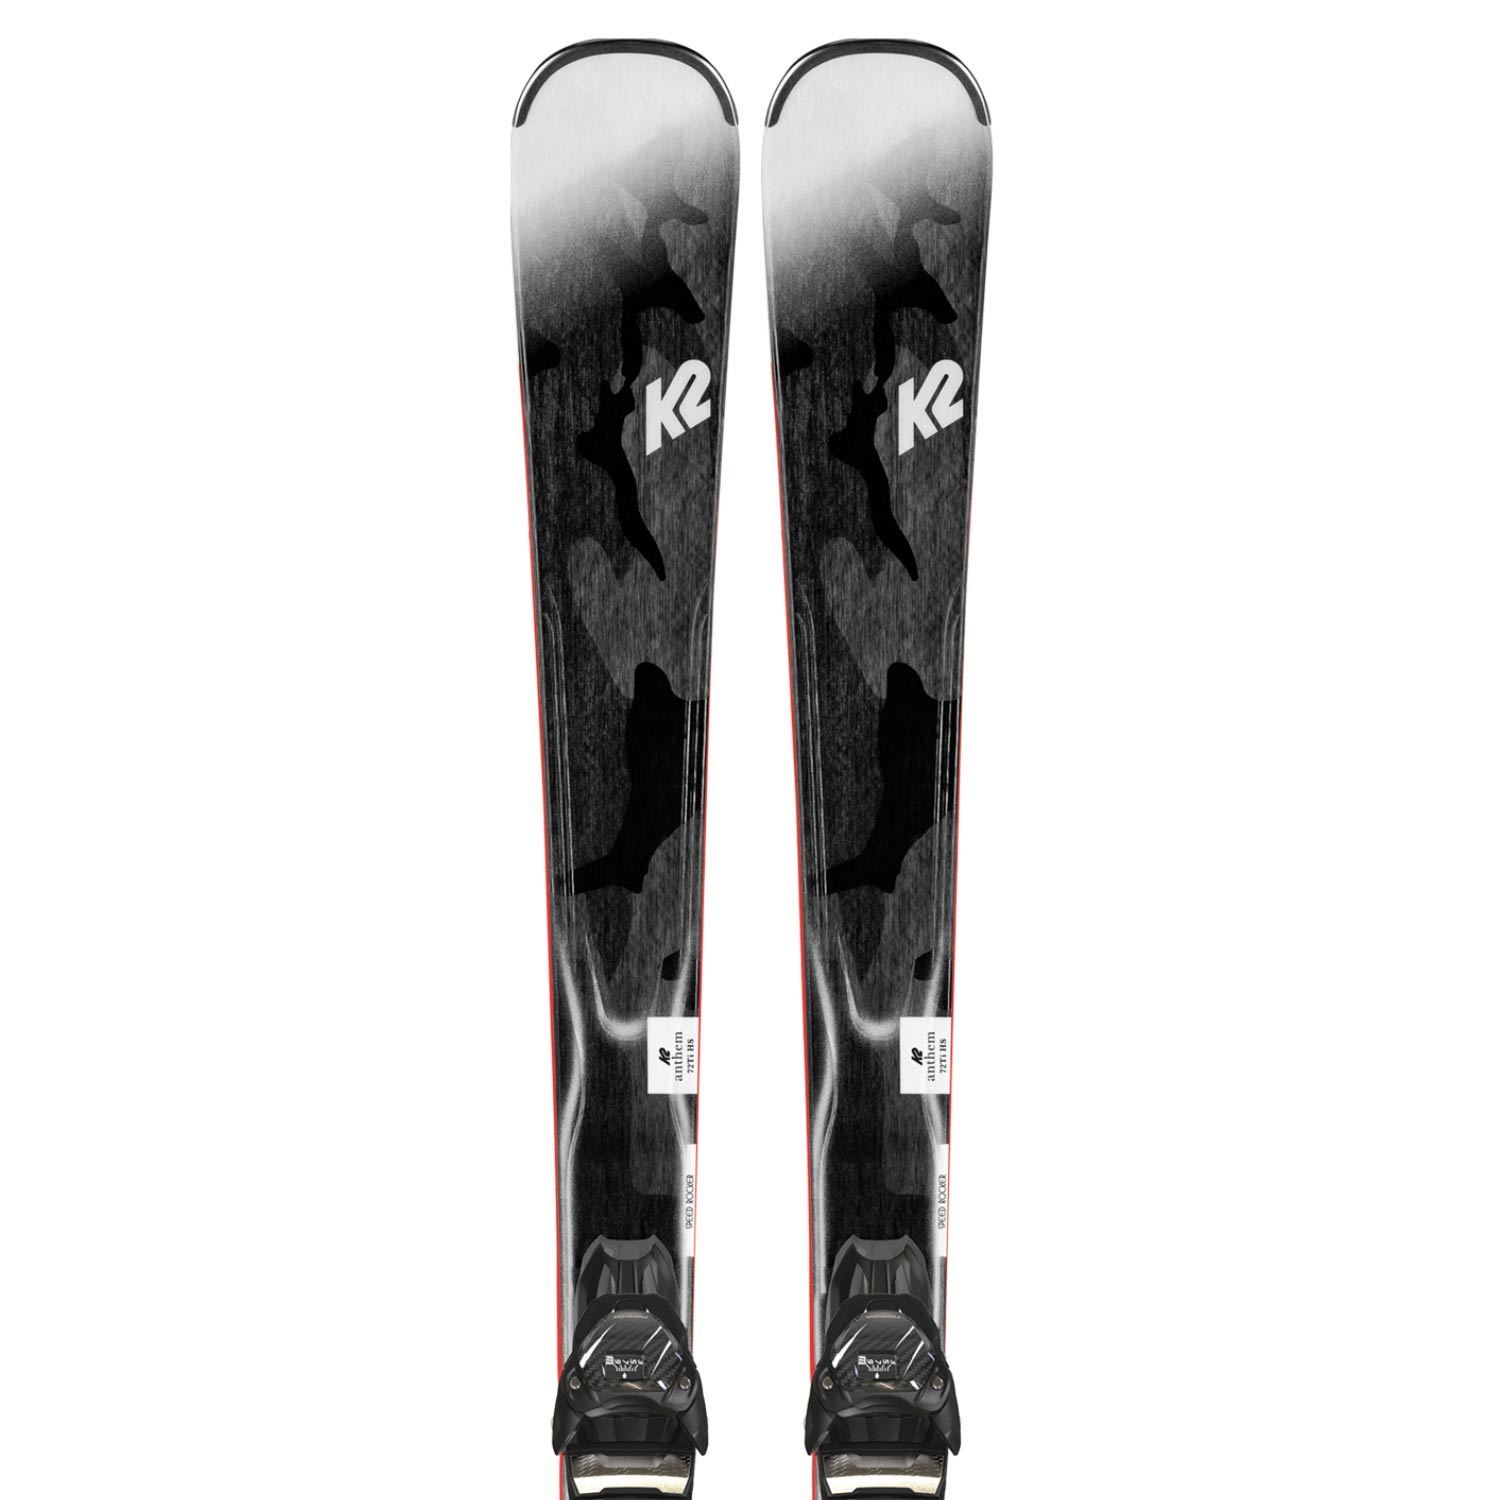 K2 Anthem 72 Ti Ski ERC 11 TCx Light Quikclik Binding 2020